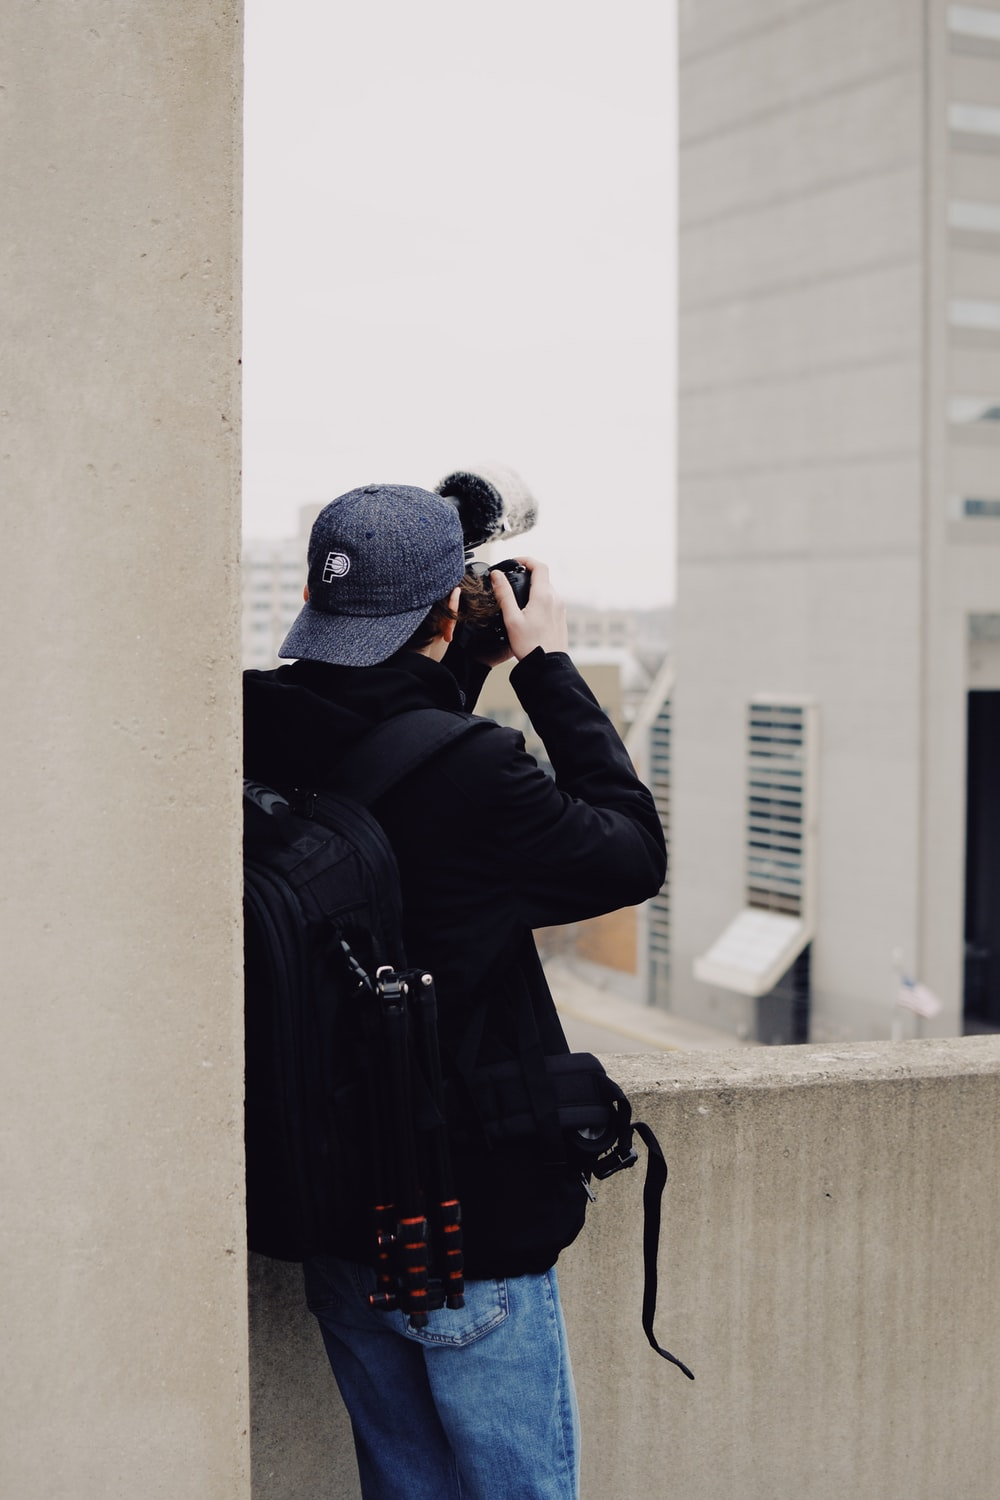 man taking photo of concrete building